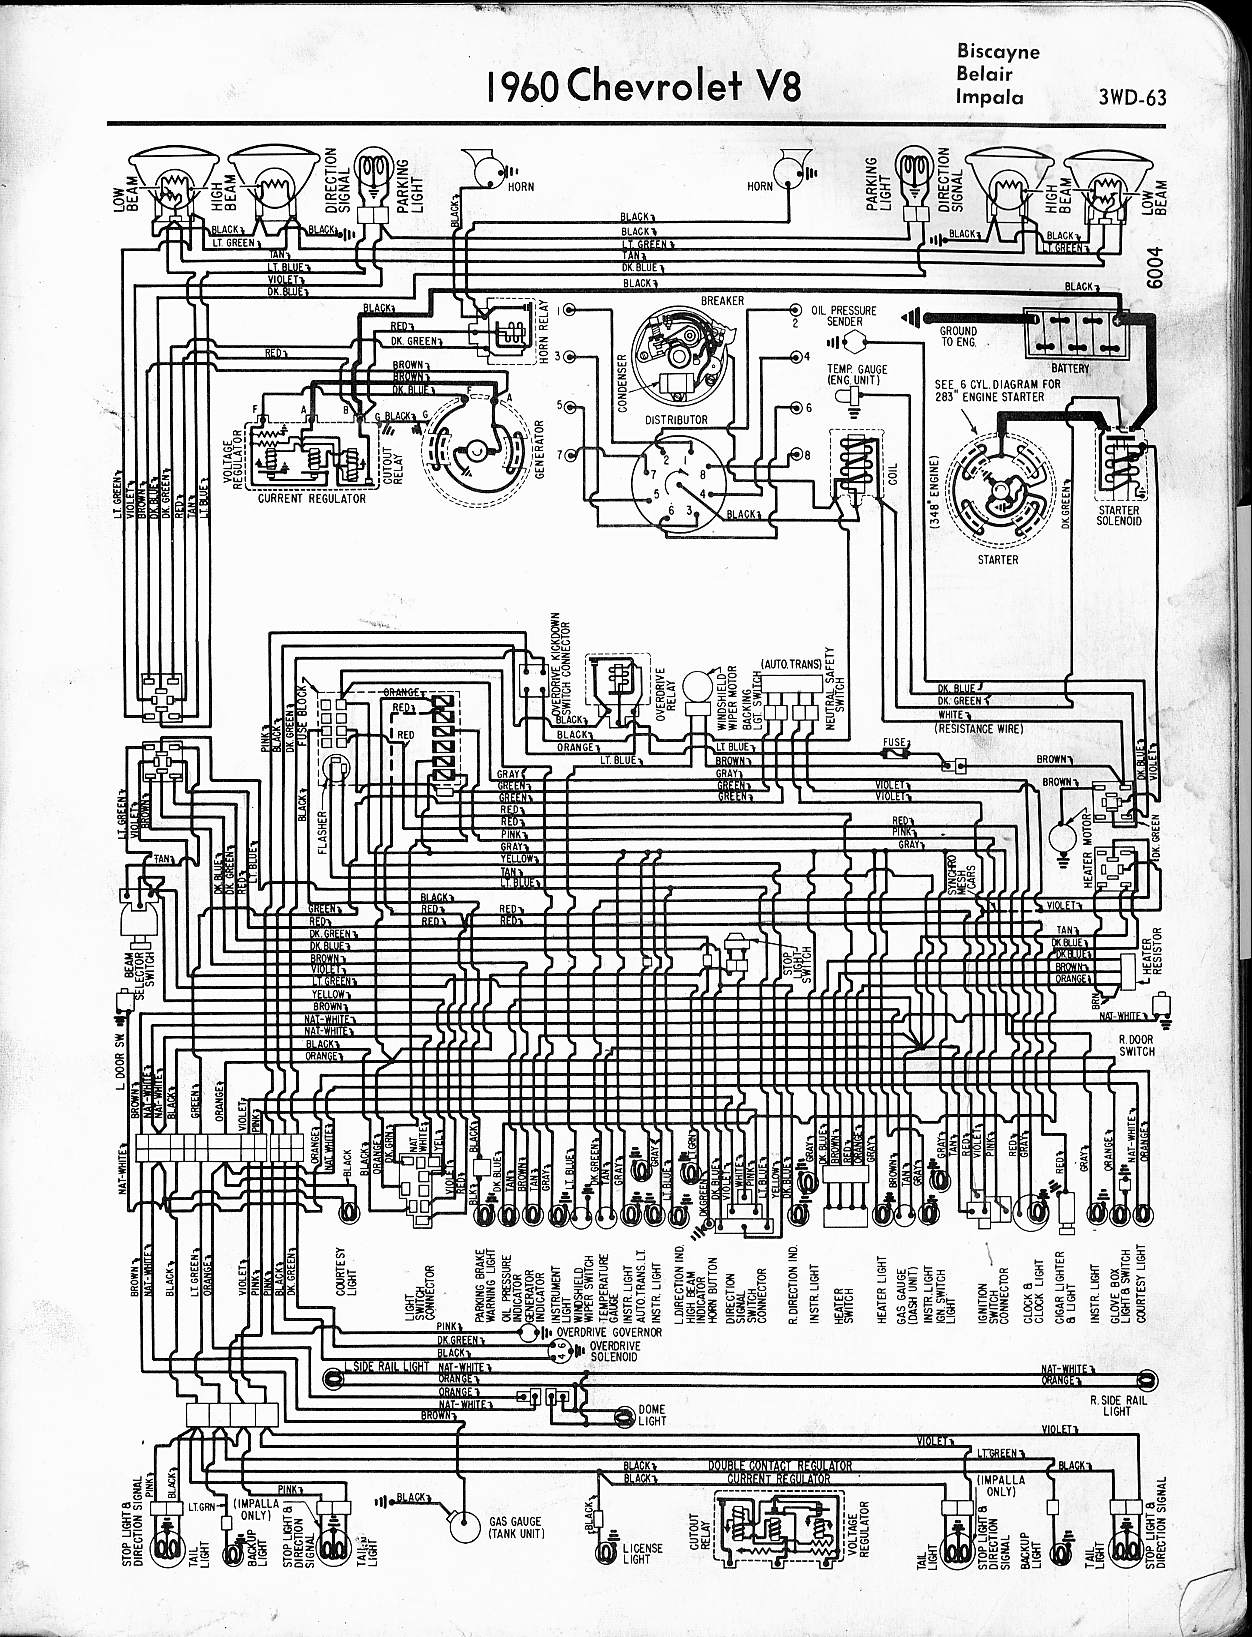 MWireChev60_3WD 063 57 65 chevy wiring diagrams 1972 chevy el camino wiring diagram at alyssarenee.co